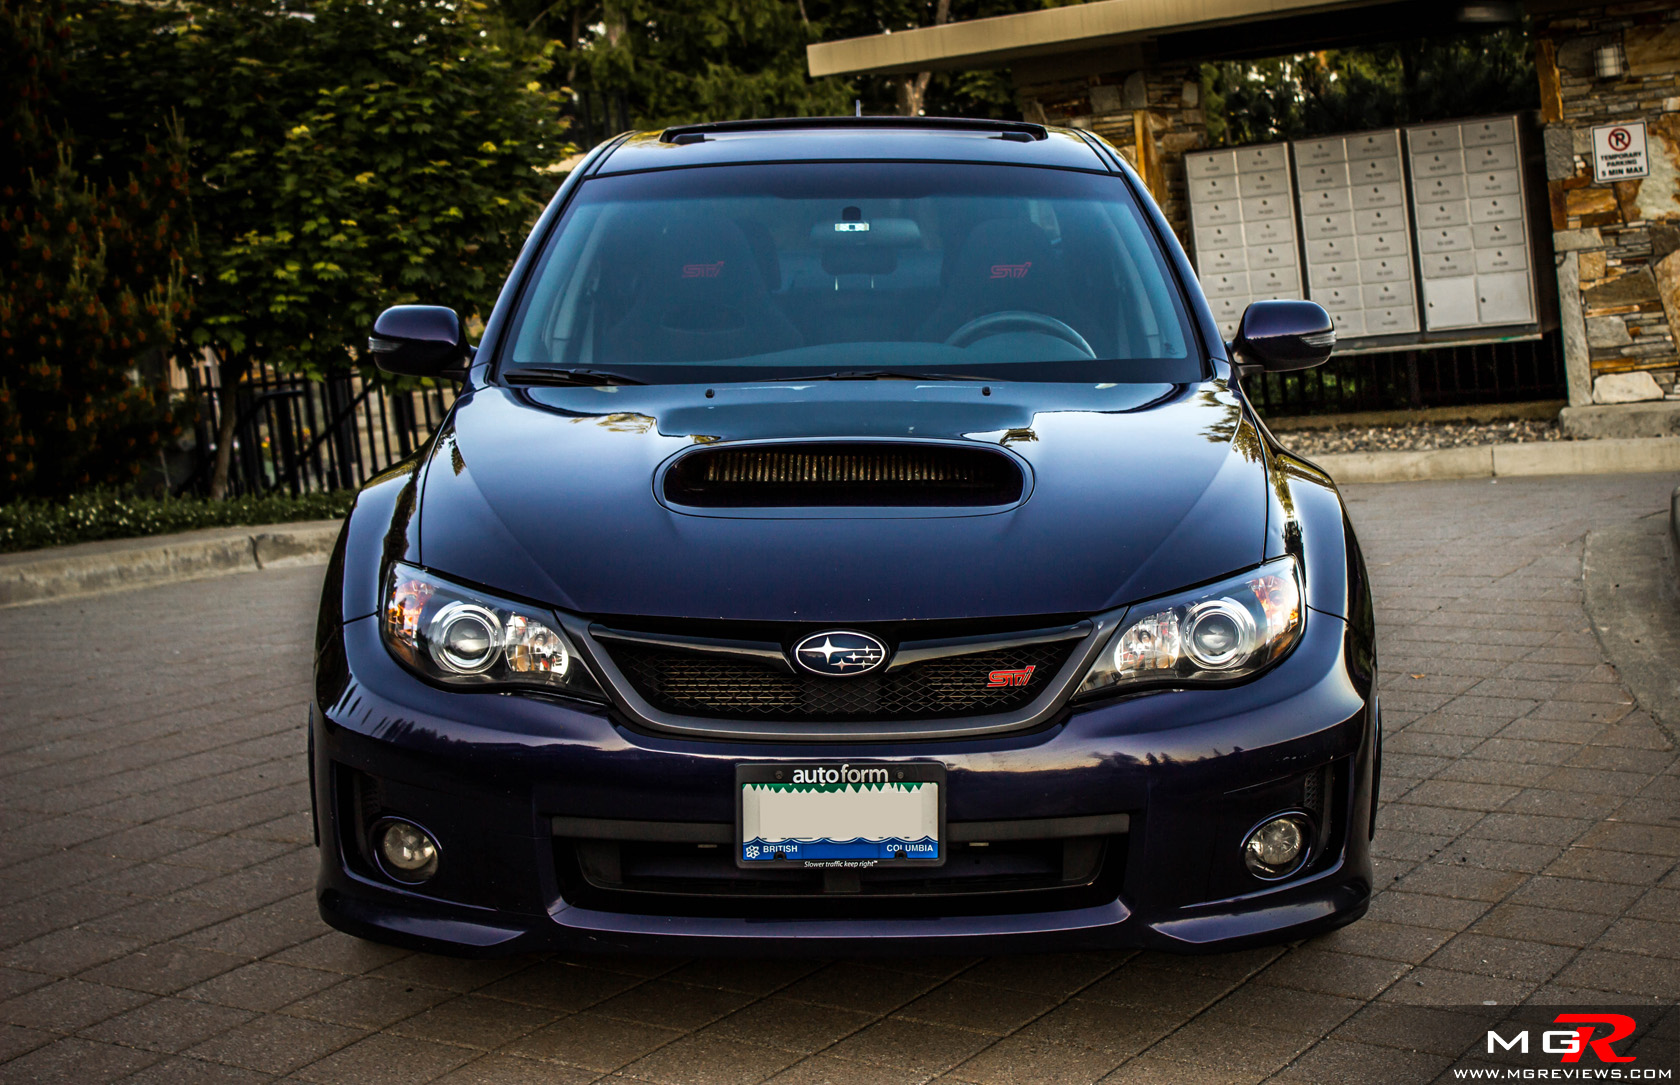 review: 2012 subaru impreza wrx sti – m.g.reviews